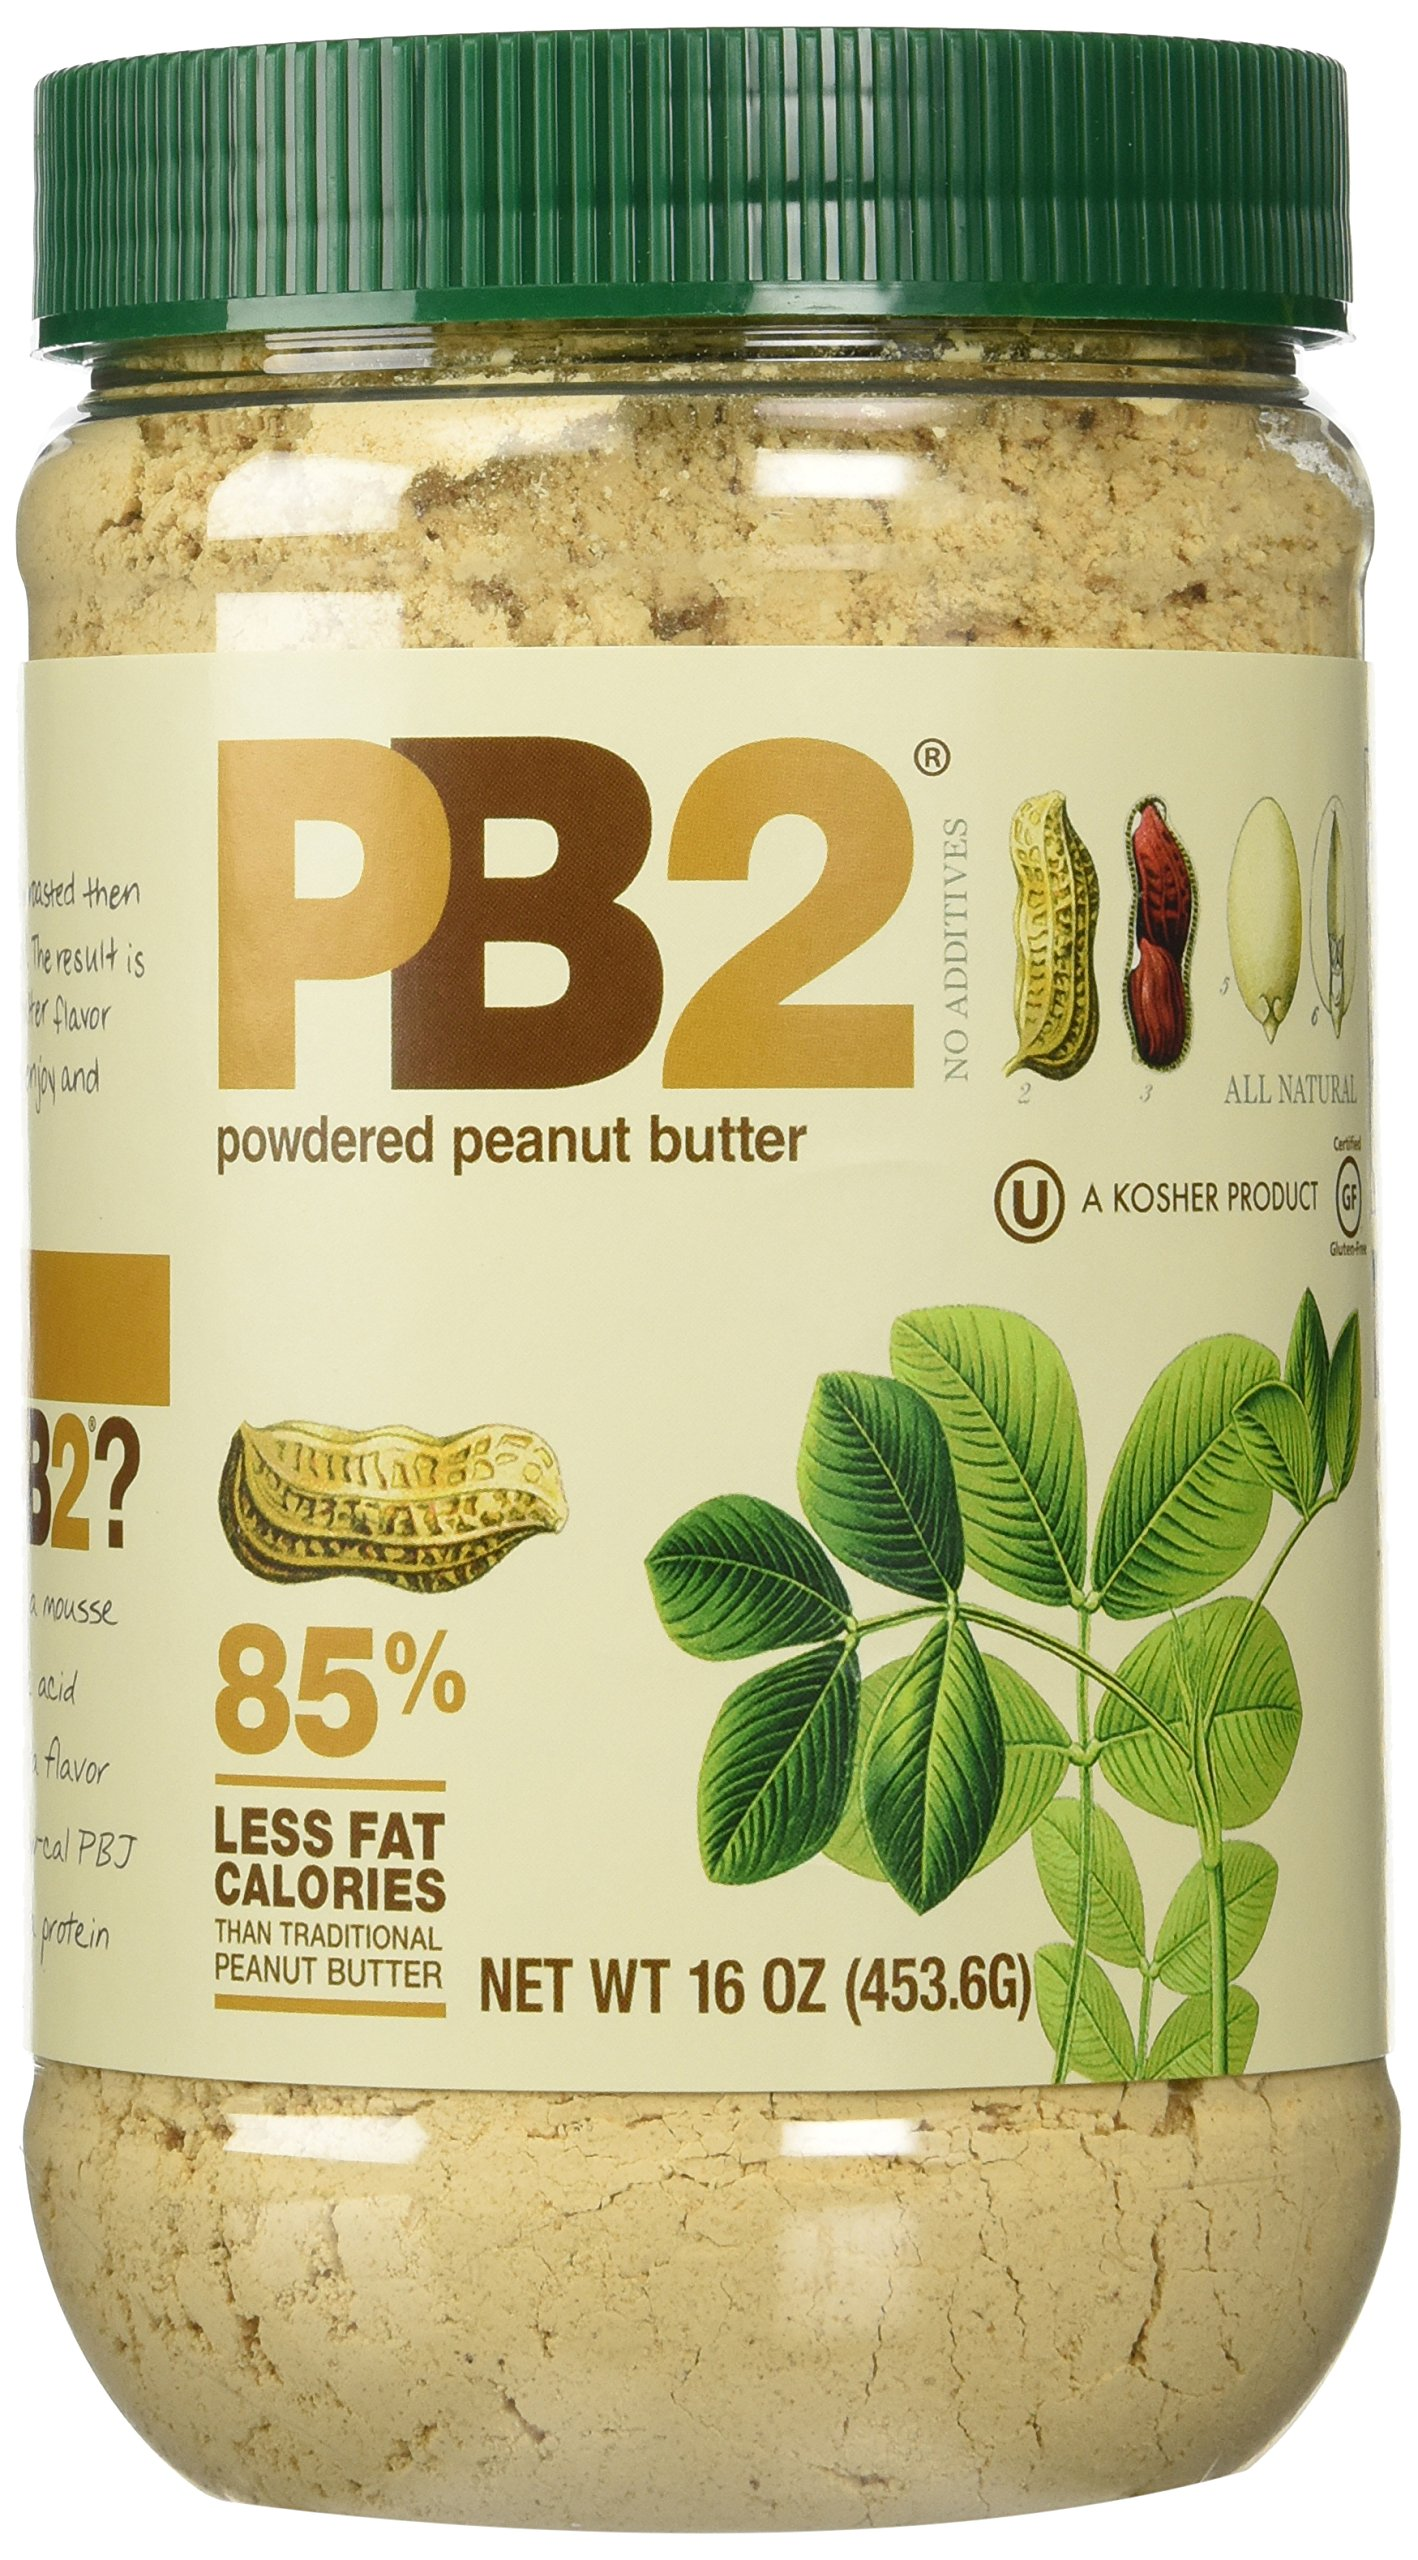 Bell Plantation Pb Chocolate Peanut Butter  Pound Jar